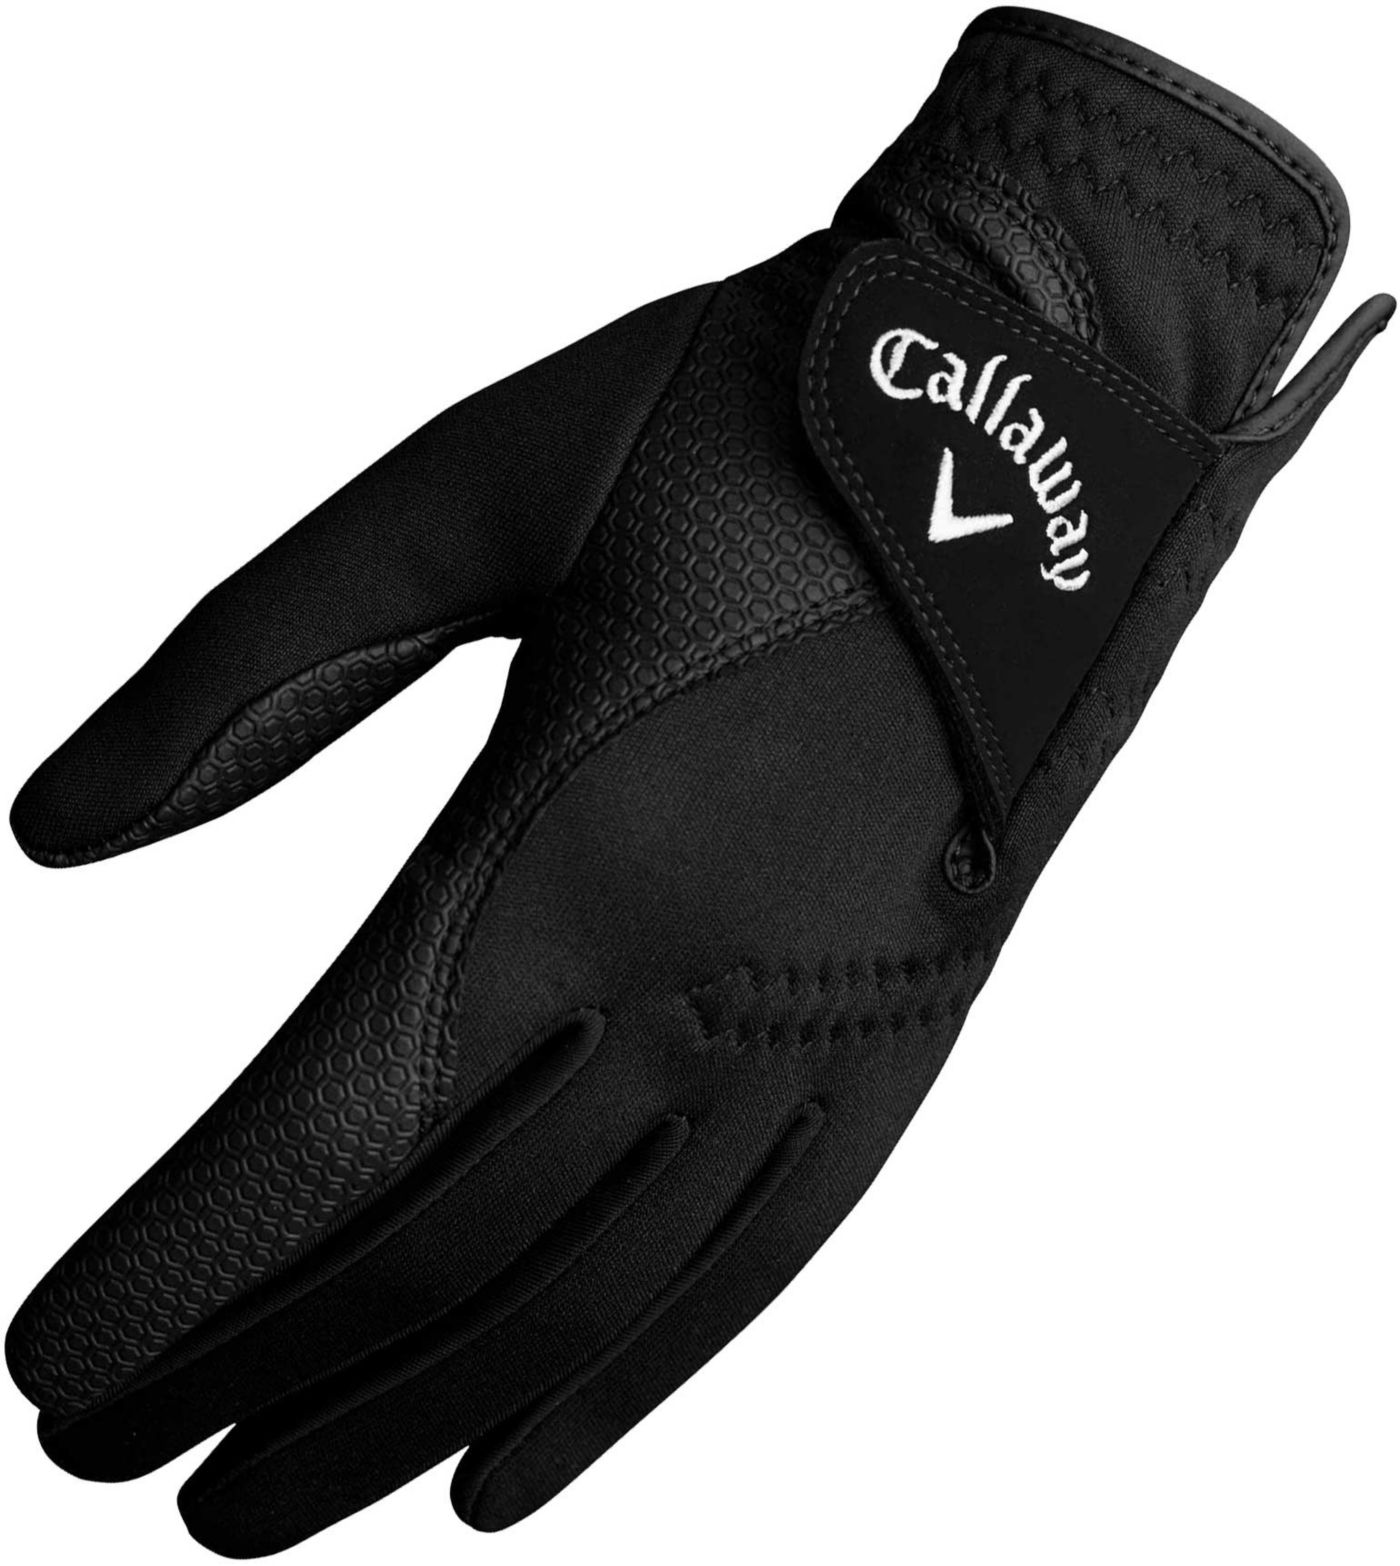 Callaway Women's Thermal Grip Golf Gloves – Two Pack